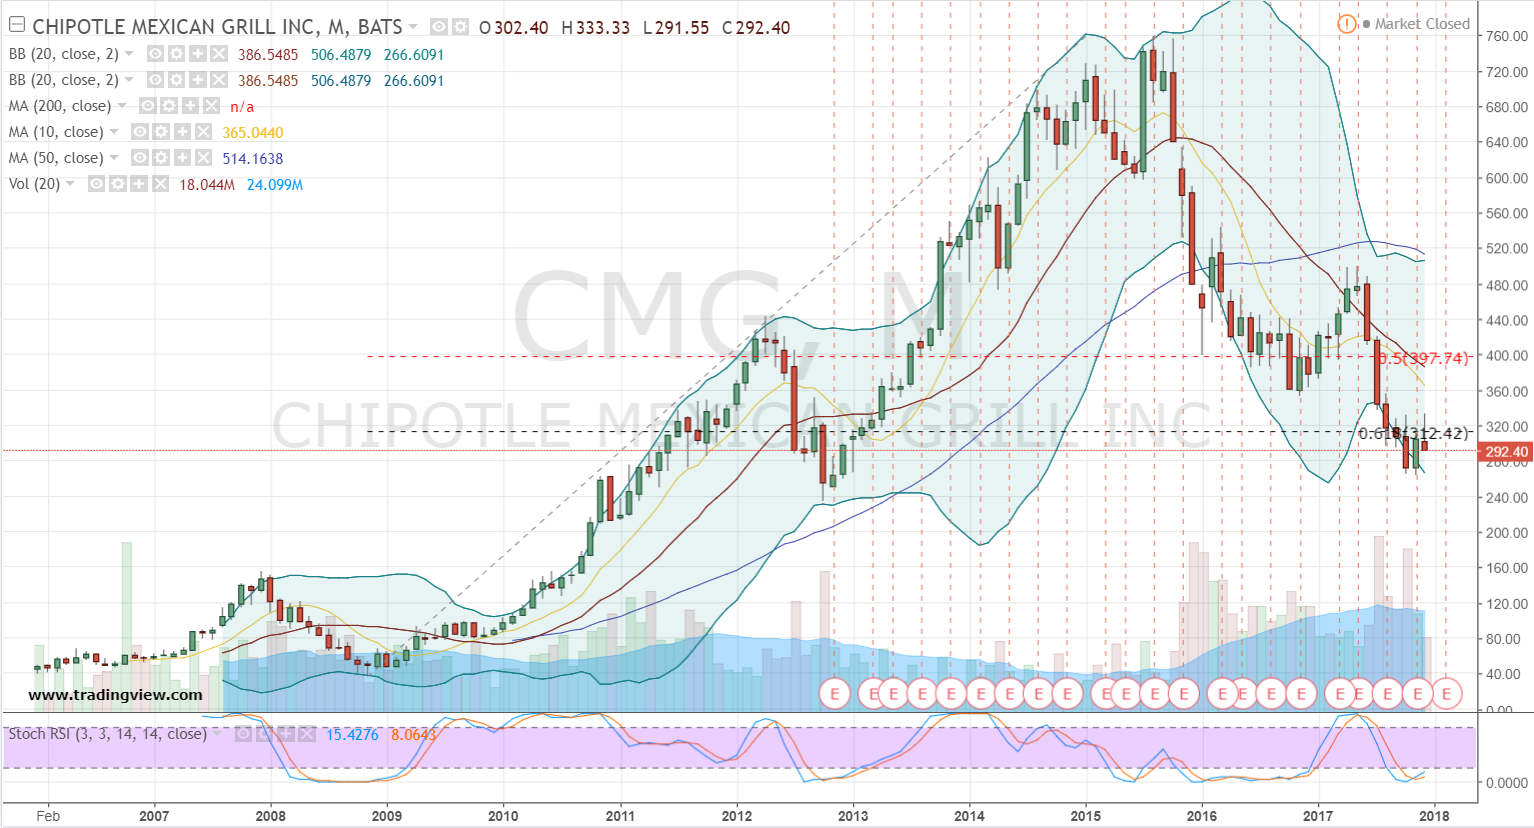 Cmg stock options